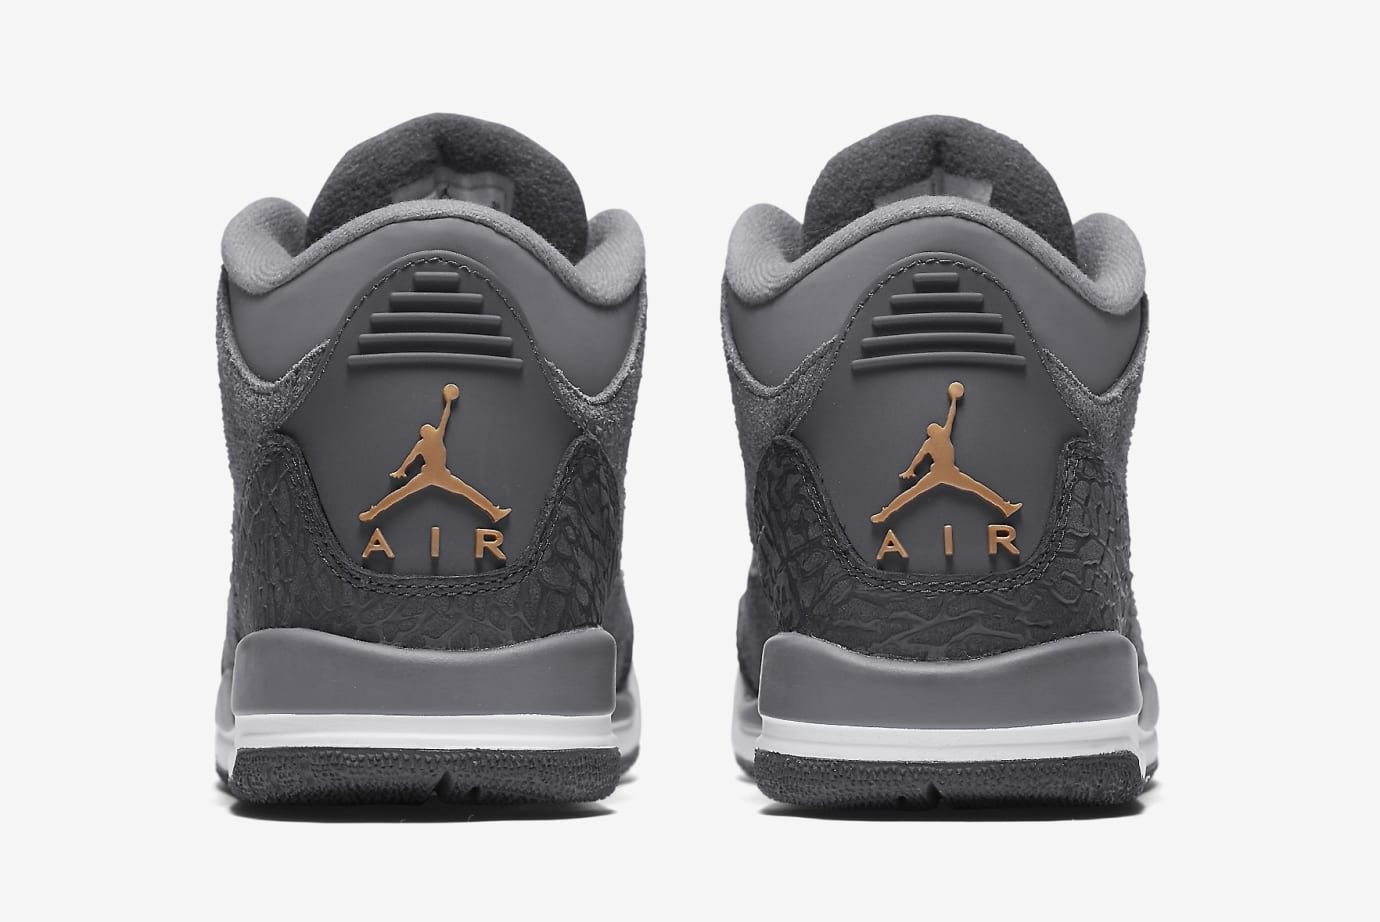 'Anthracite' Air Jordan 3 GG 441140-035 (Heel)